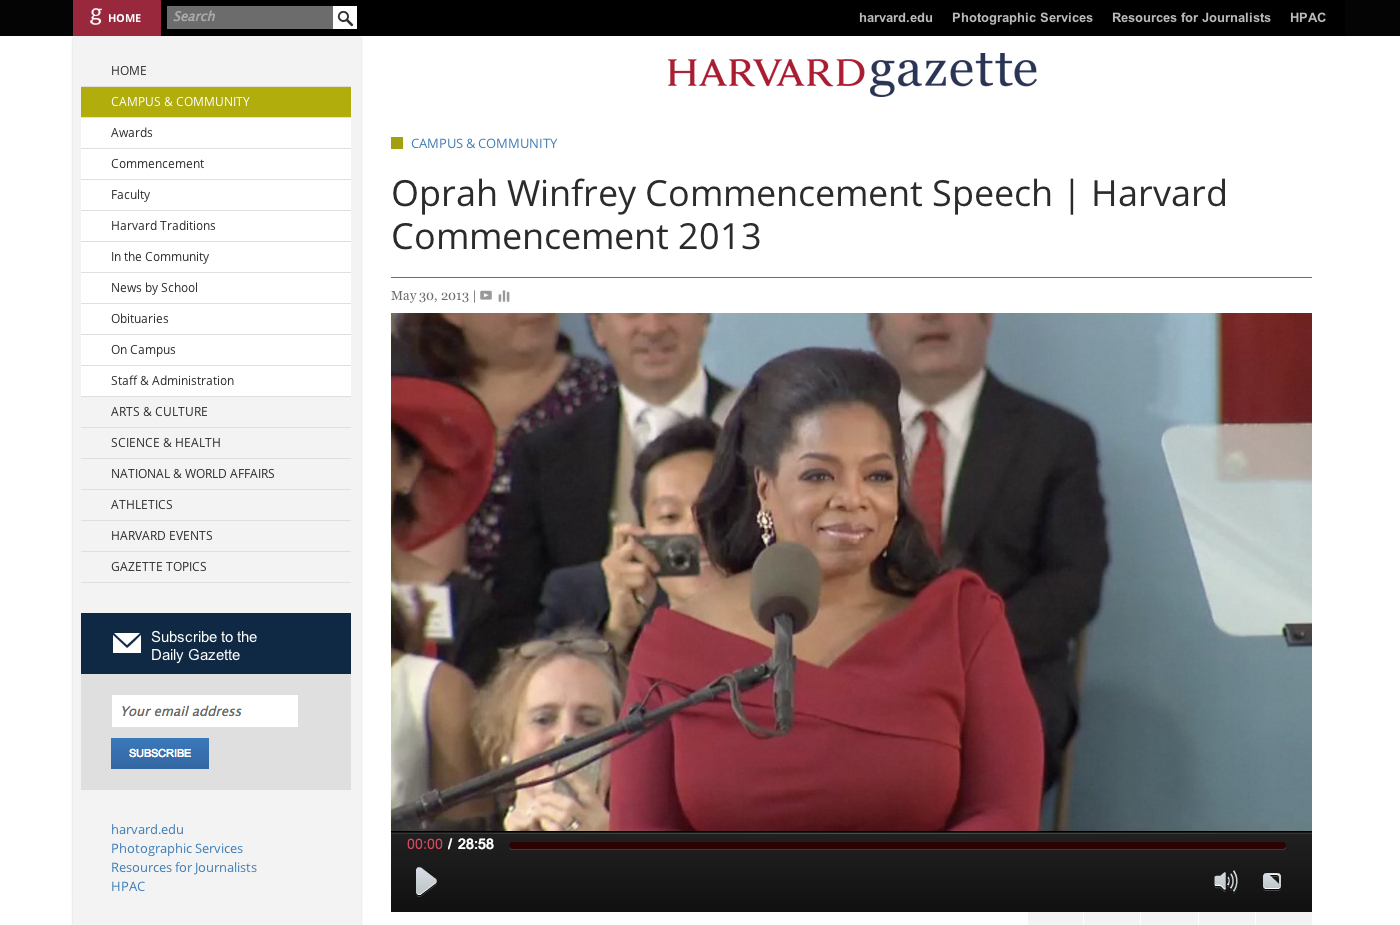 Oprah Winfrey Commencement Speech | Harvard Commencement 2013 | Harvard Gazette